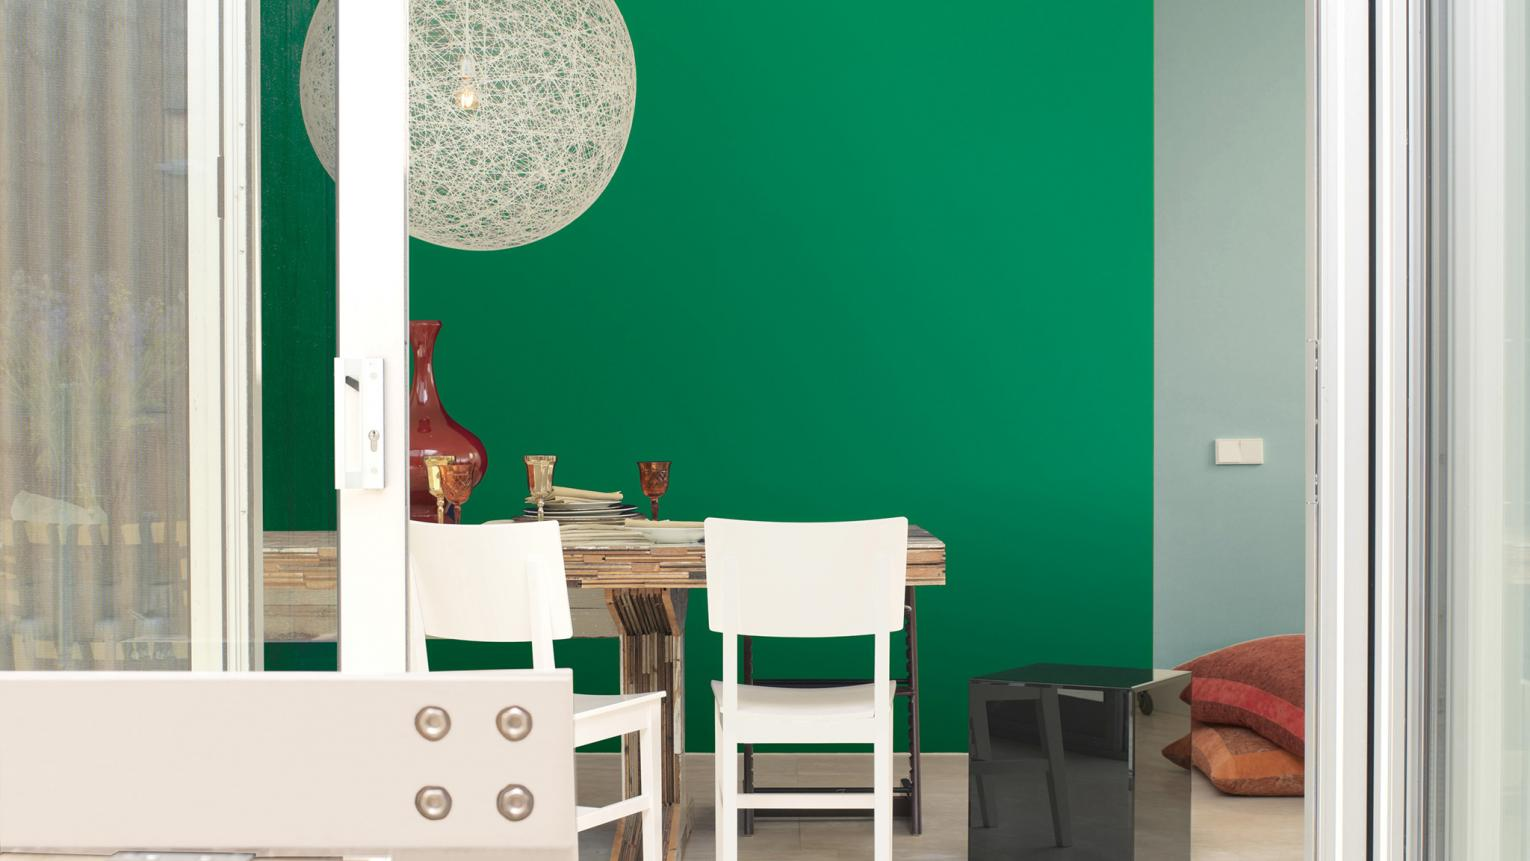 Painting a feature wall? Follow our expert tips to creating a wall that brings out your room's best design features.